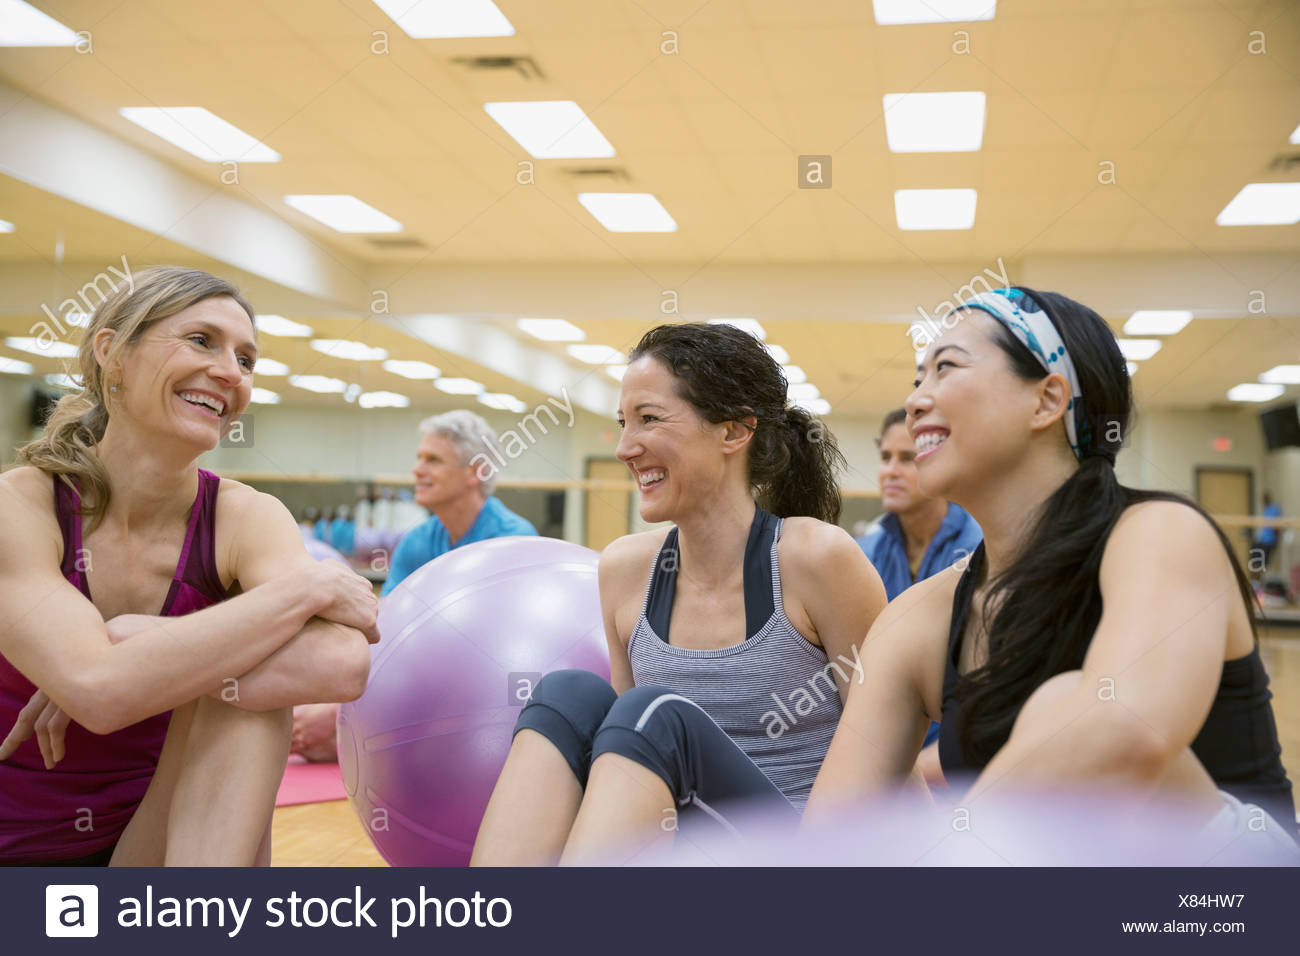 Smiling women talking in exercise class - Stock Image